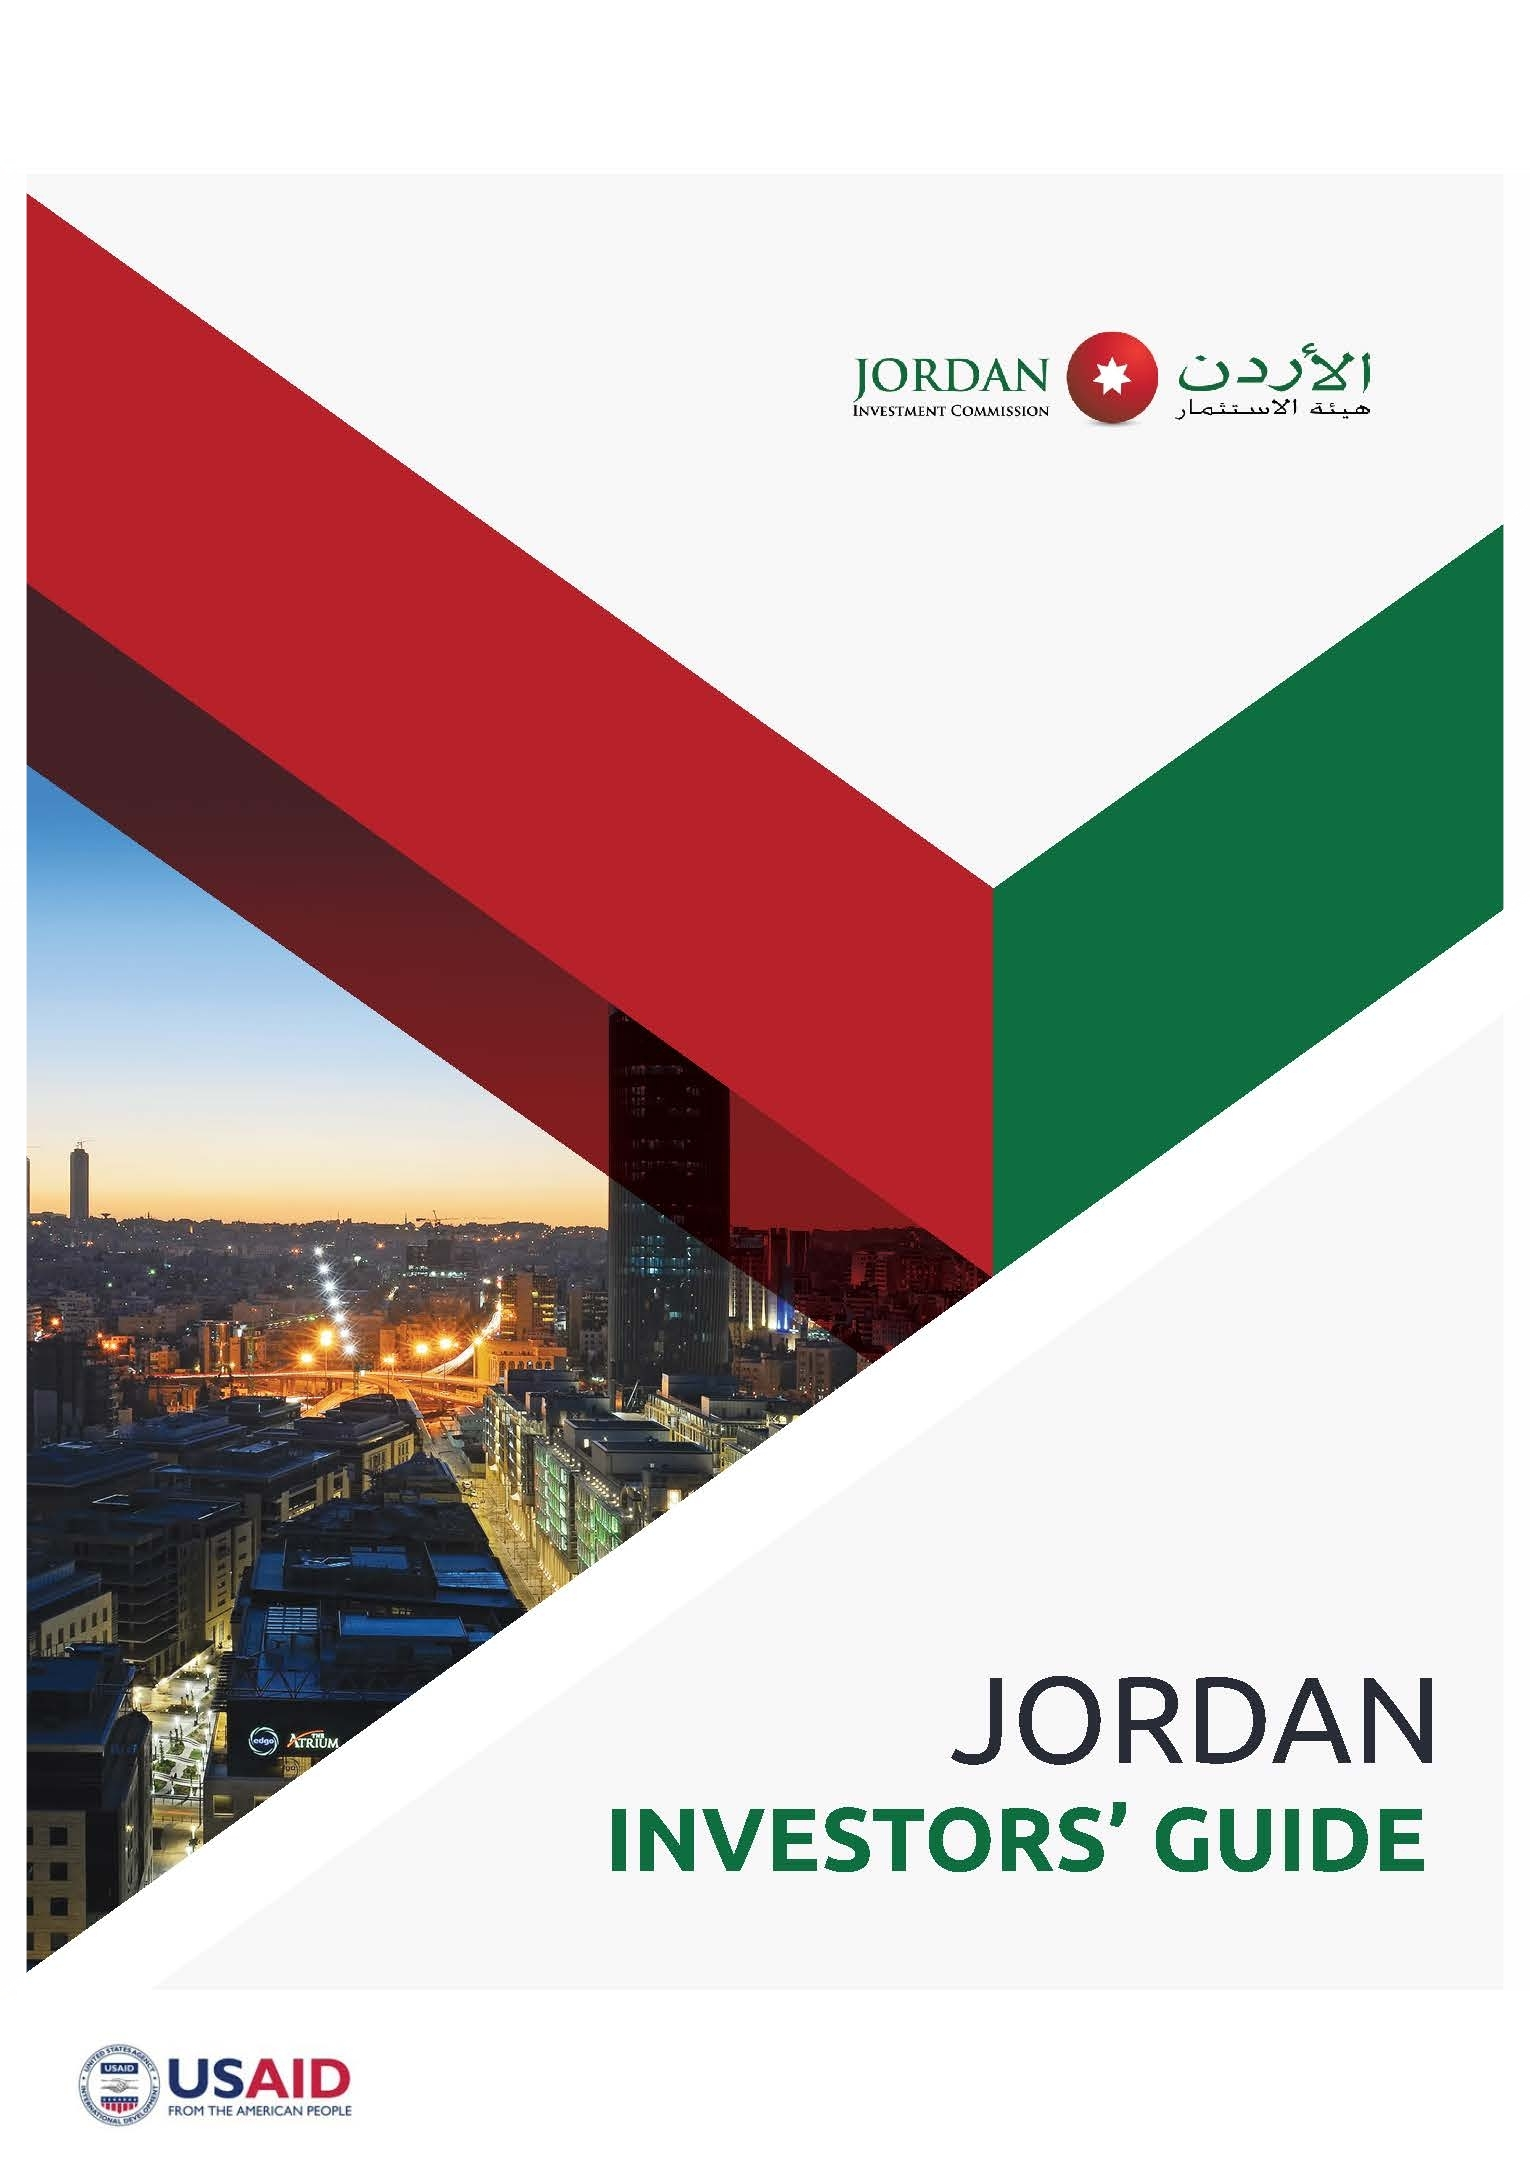 JCP has worked with the JIC to develop an Investors' Guide, a Licensing Manual, branding guidelines, and Sector Profiles designed to attract investment to the country